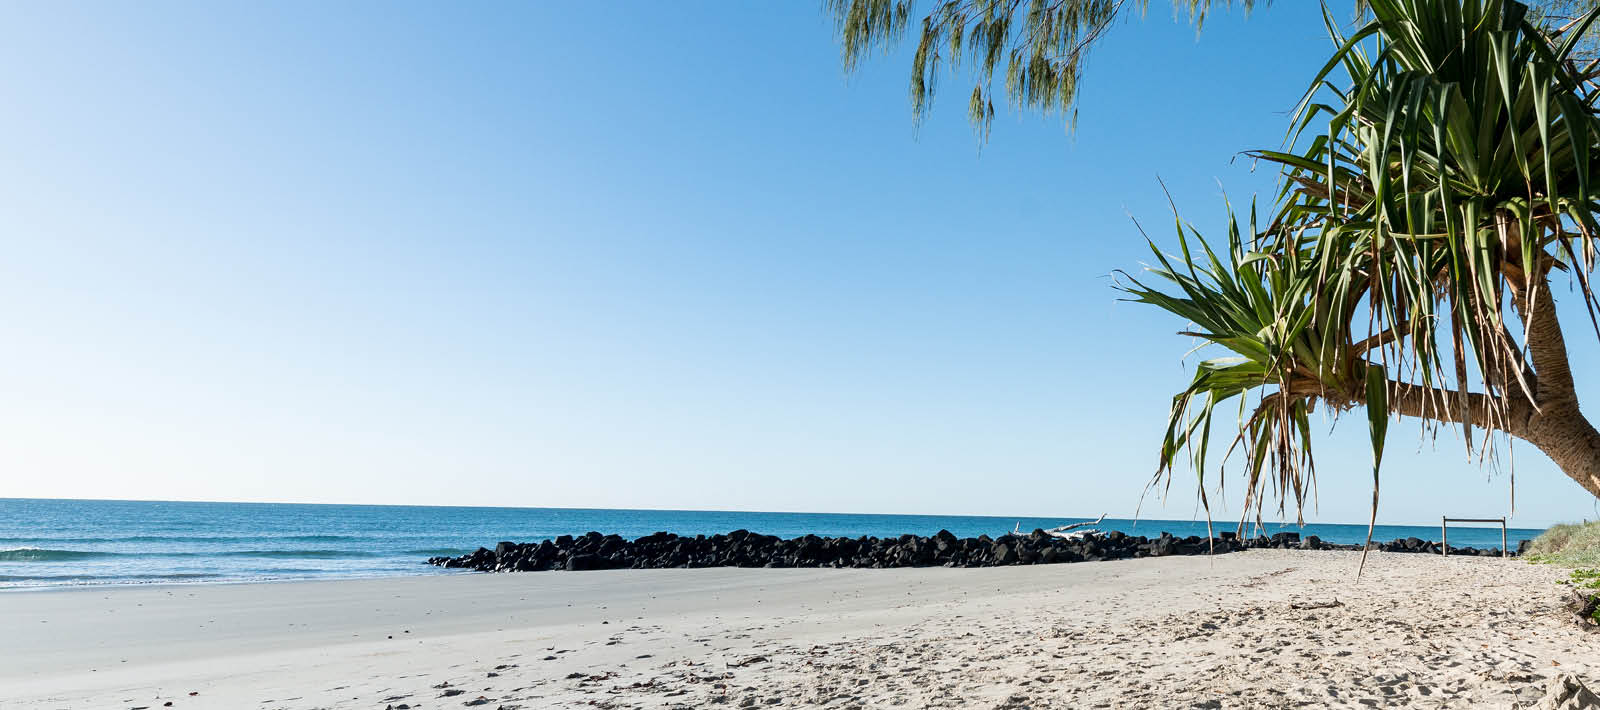 Enjoy your stay at one of the beautiful oceanfront holiday parks in the Bundaberg Region.